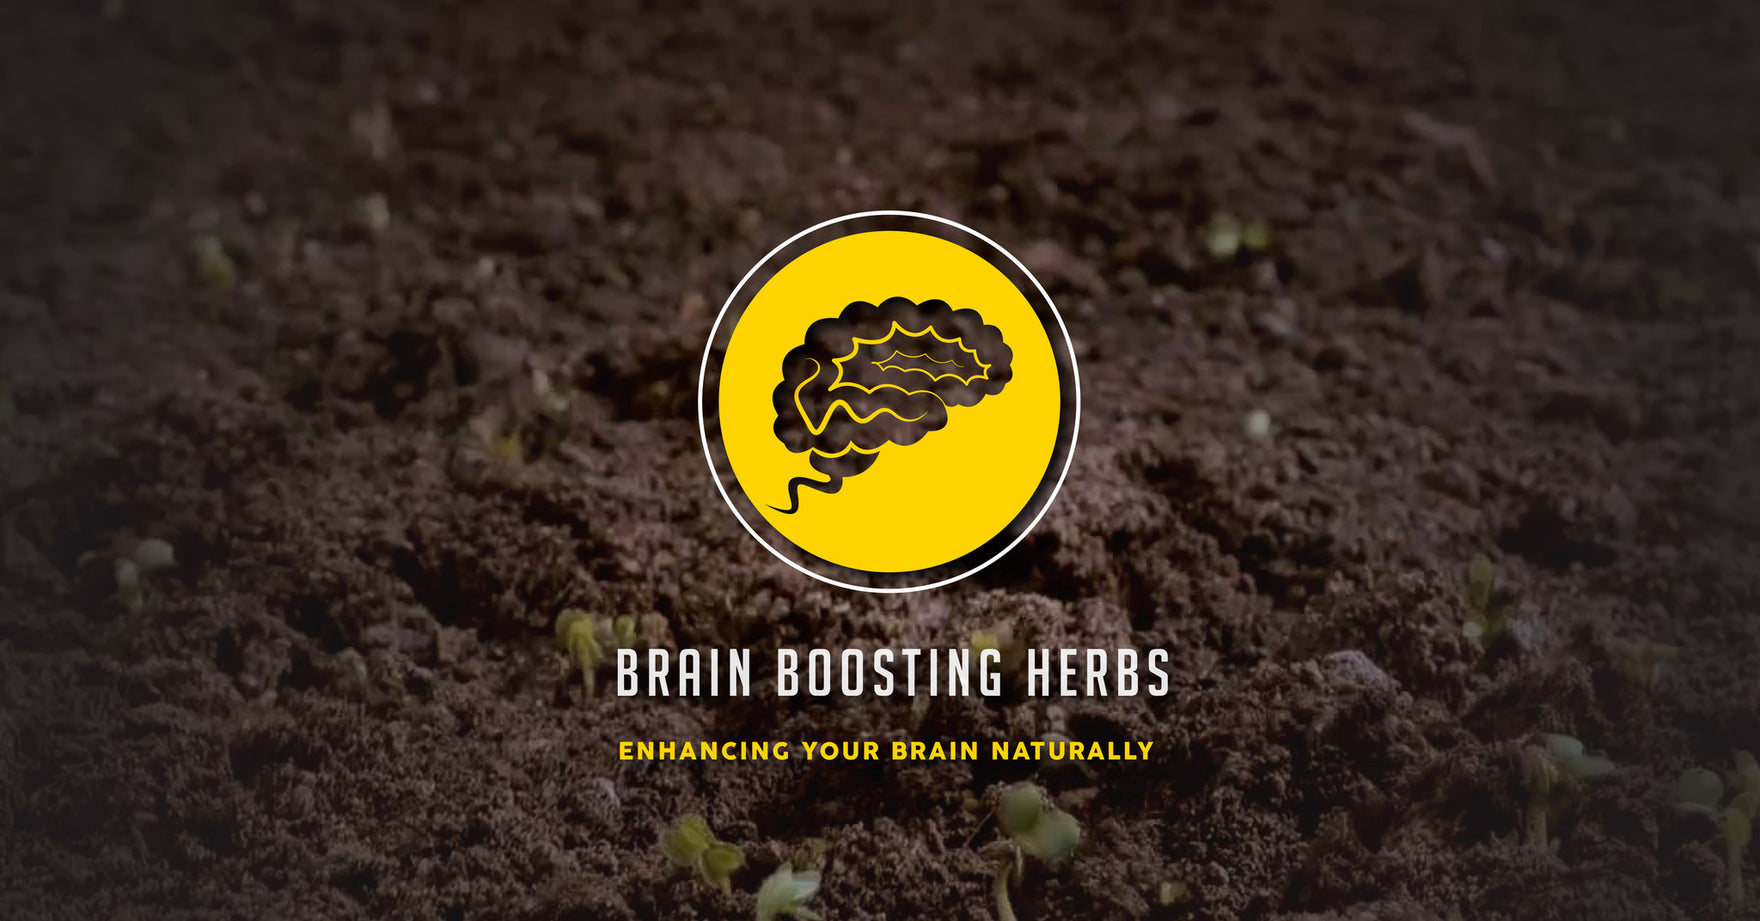 Brain Boosting Herbs: Enhance Your Brain Naturally